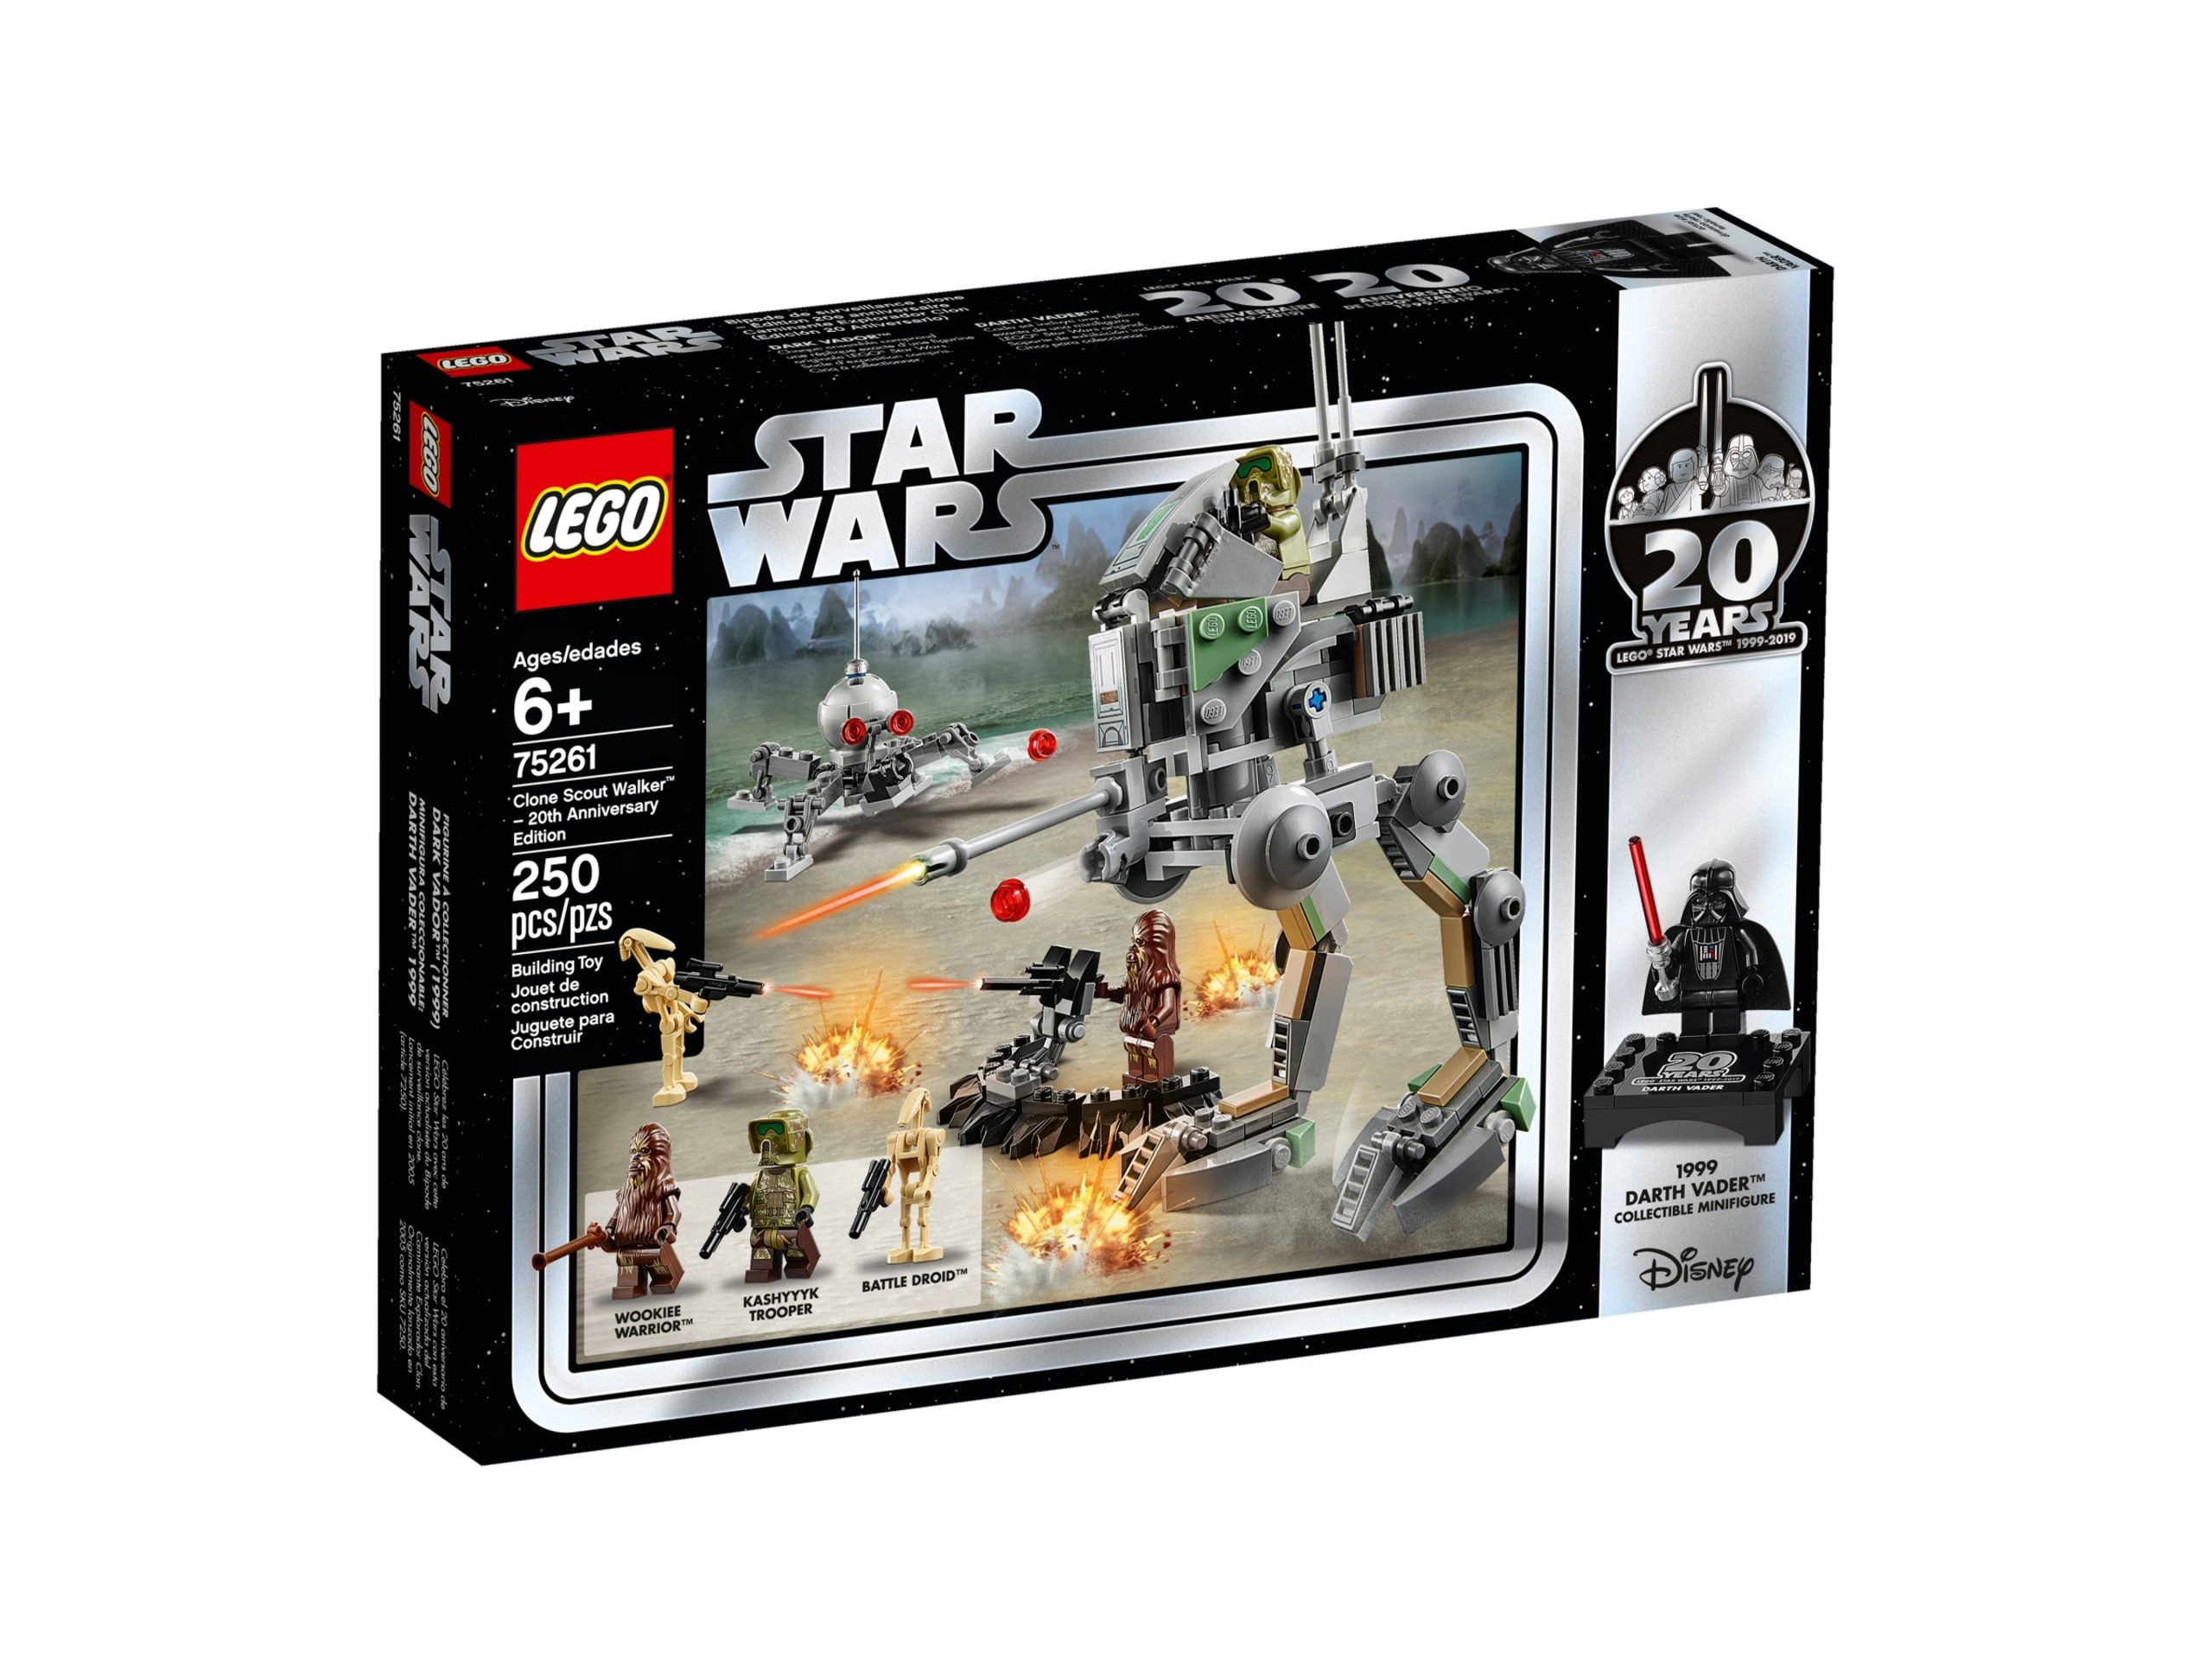 clone scout walker 20 jahre lego 75261 star wars scaled